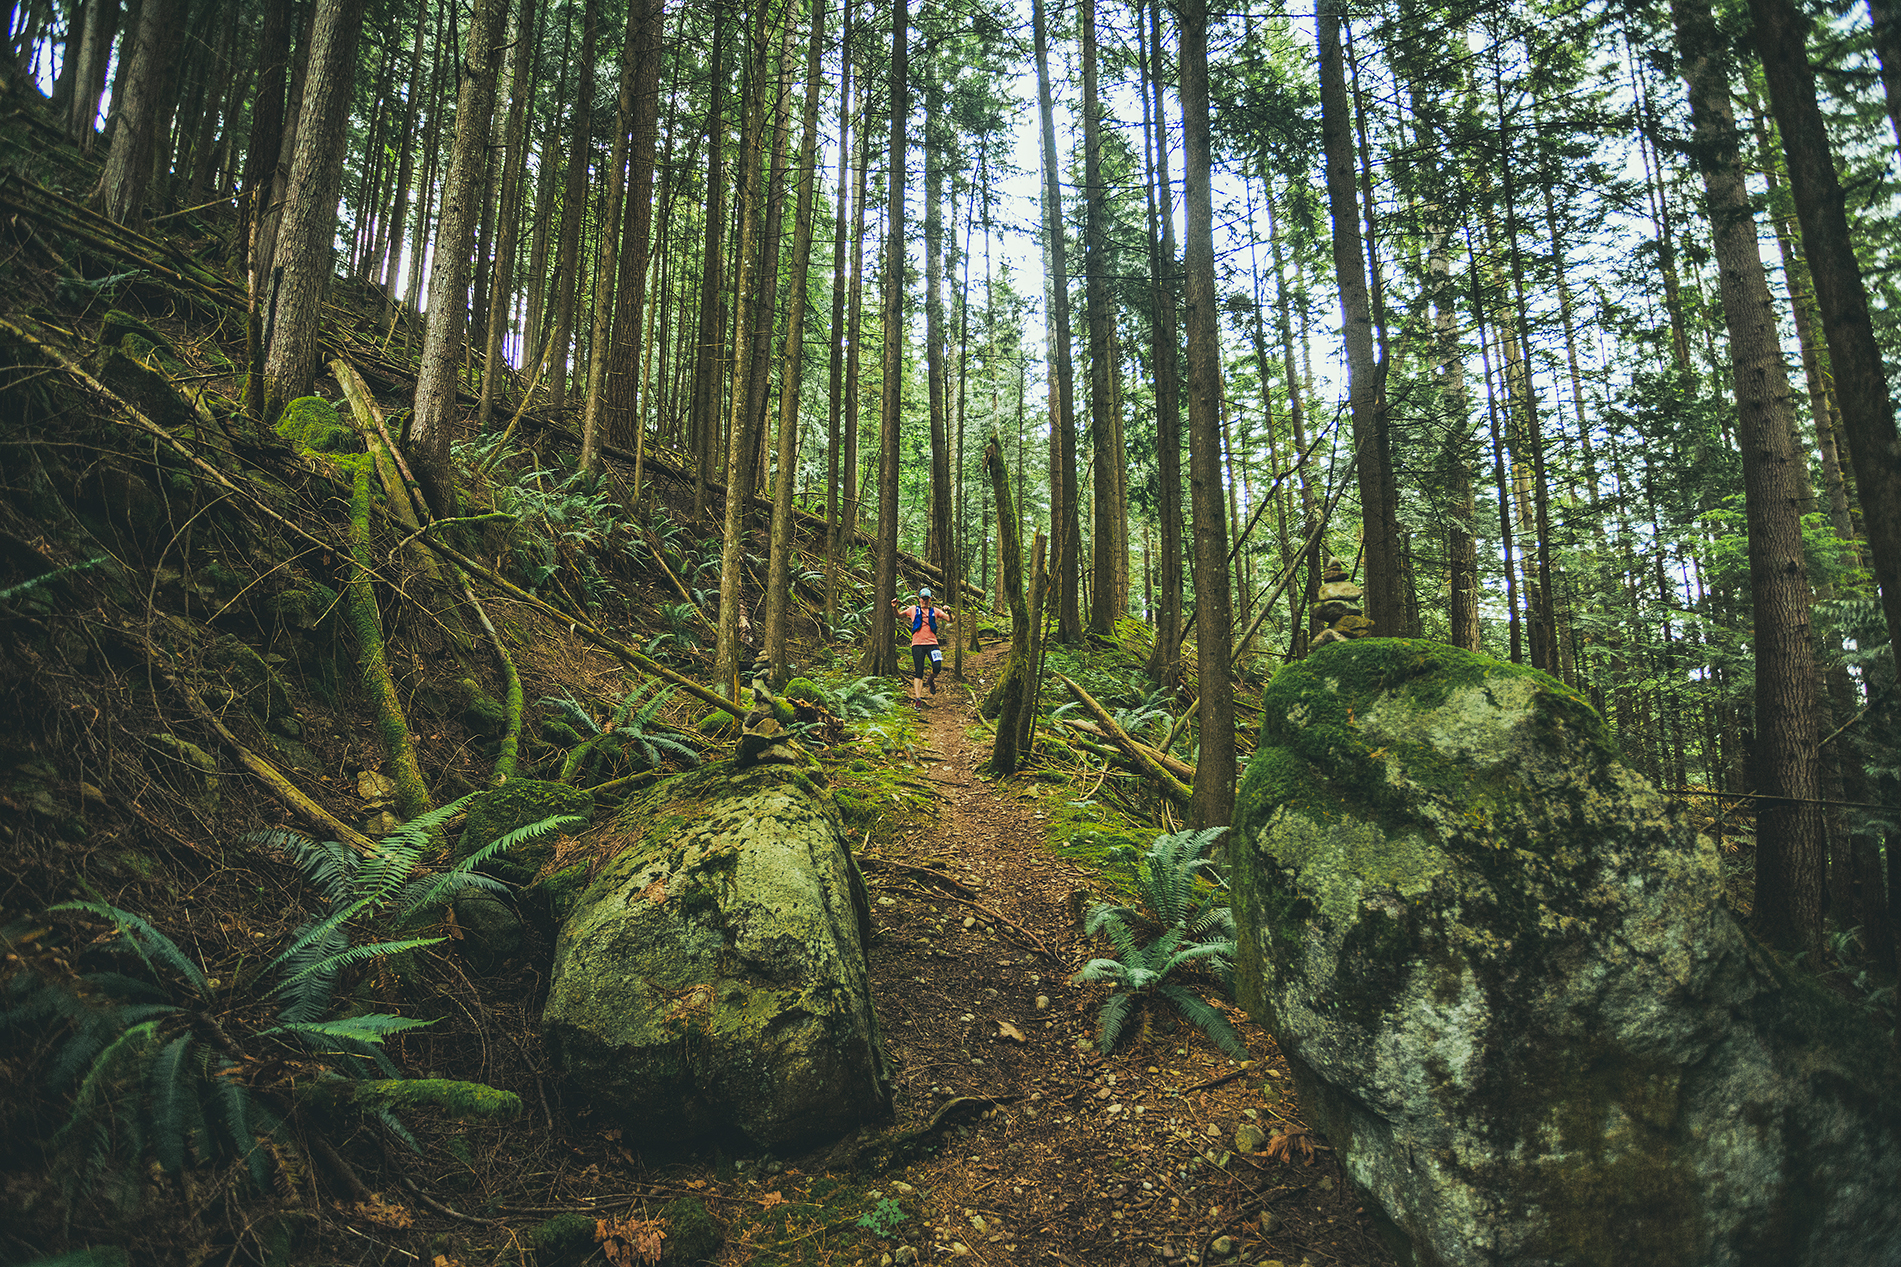 Fraser Valley Trail Races - Bear Mountain - IMG_3069 by Brice Ferre Studio - Vancouver Portrait Adventure and Athlete Photographer.jpg